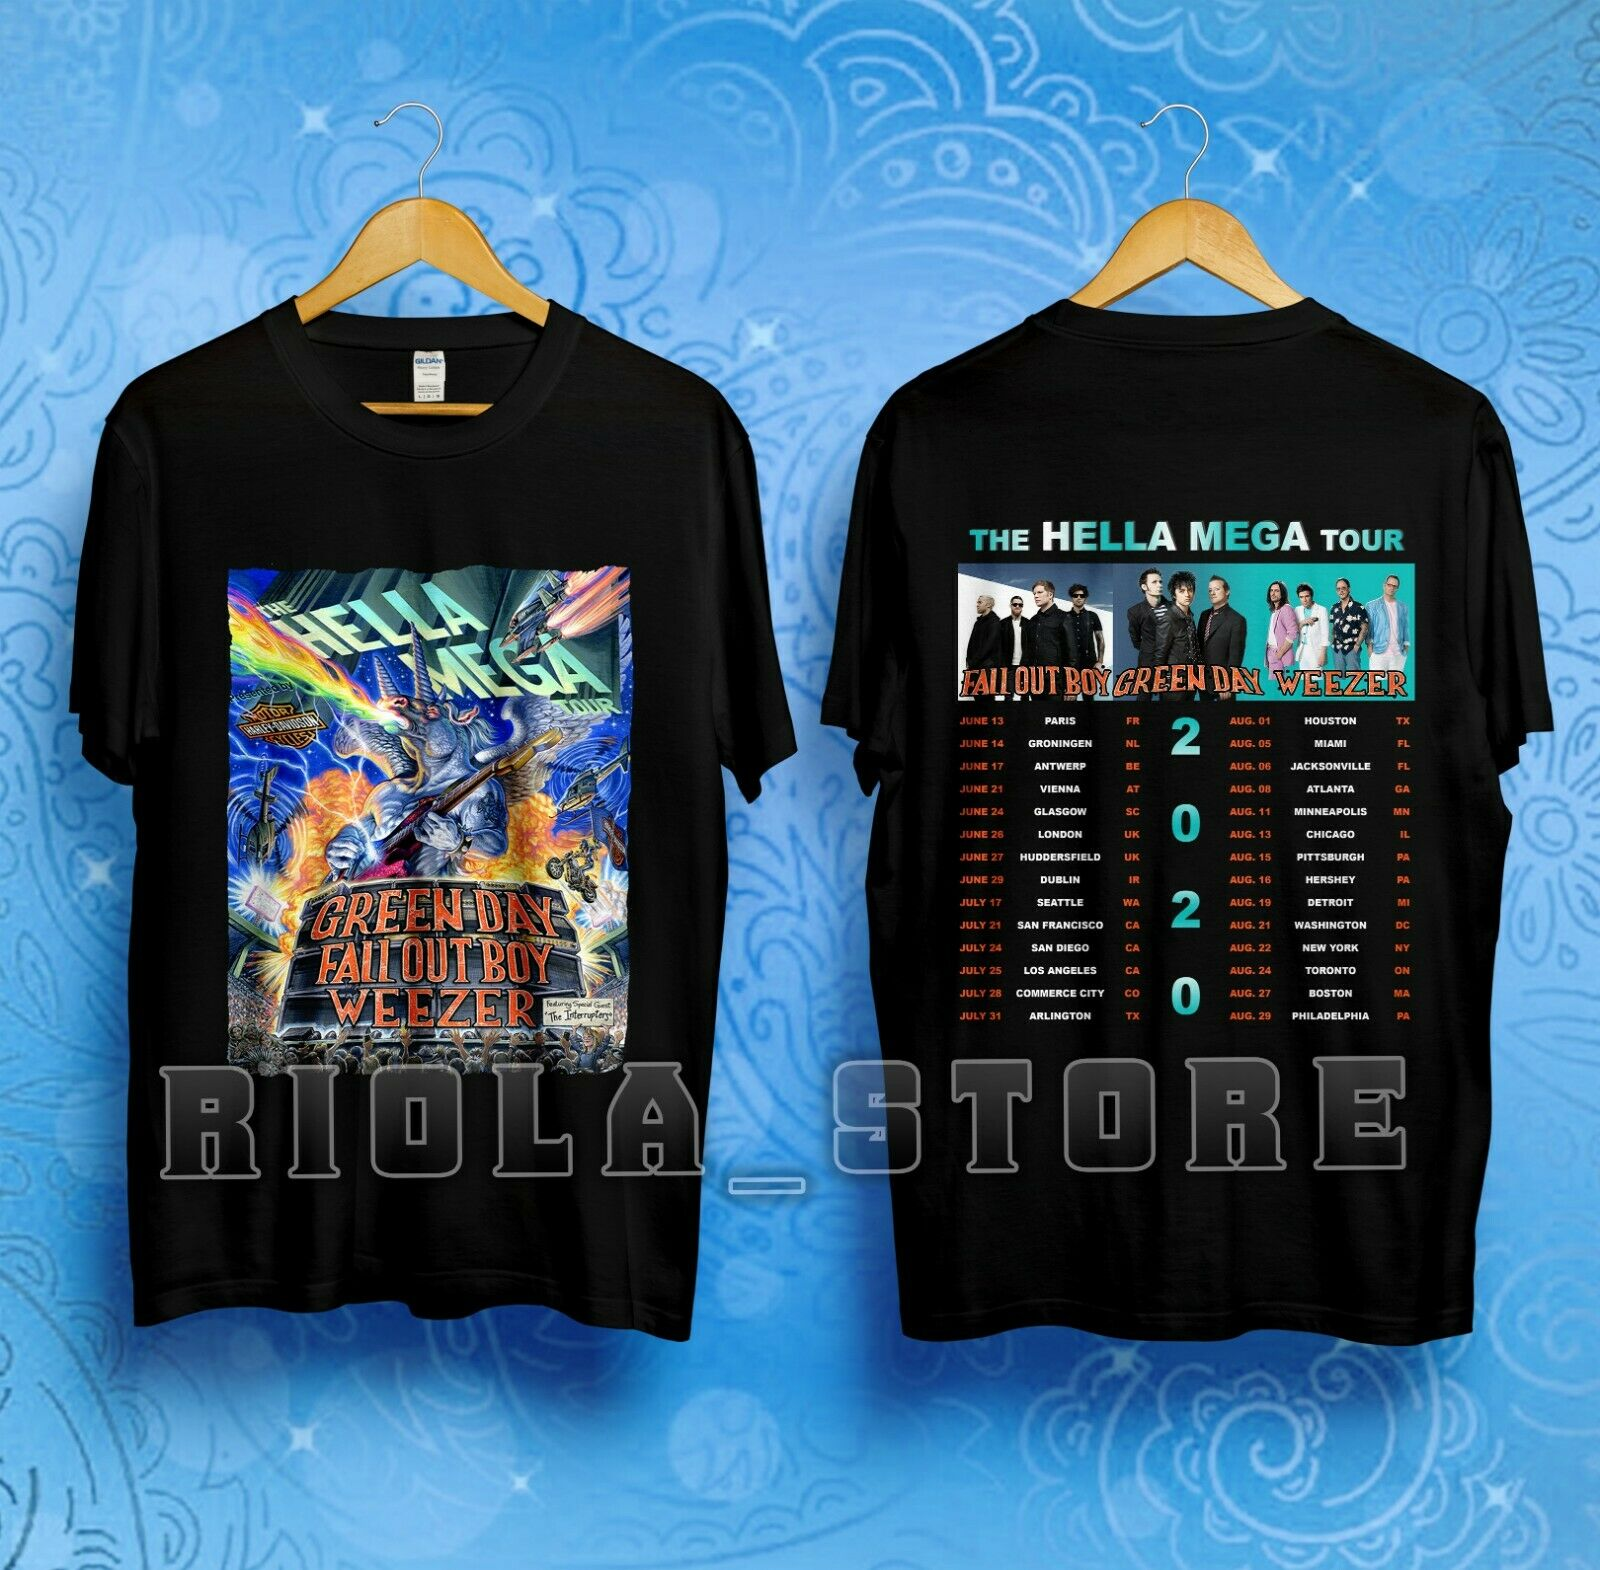 The Hella Mega Tour 2020 Green Day Weezer Fall Out Boy Dates T Shirt Size S 3 Xl Fashion by Ali Express.Com